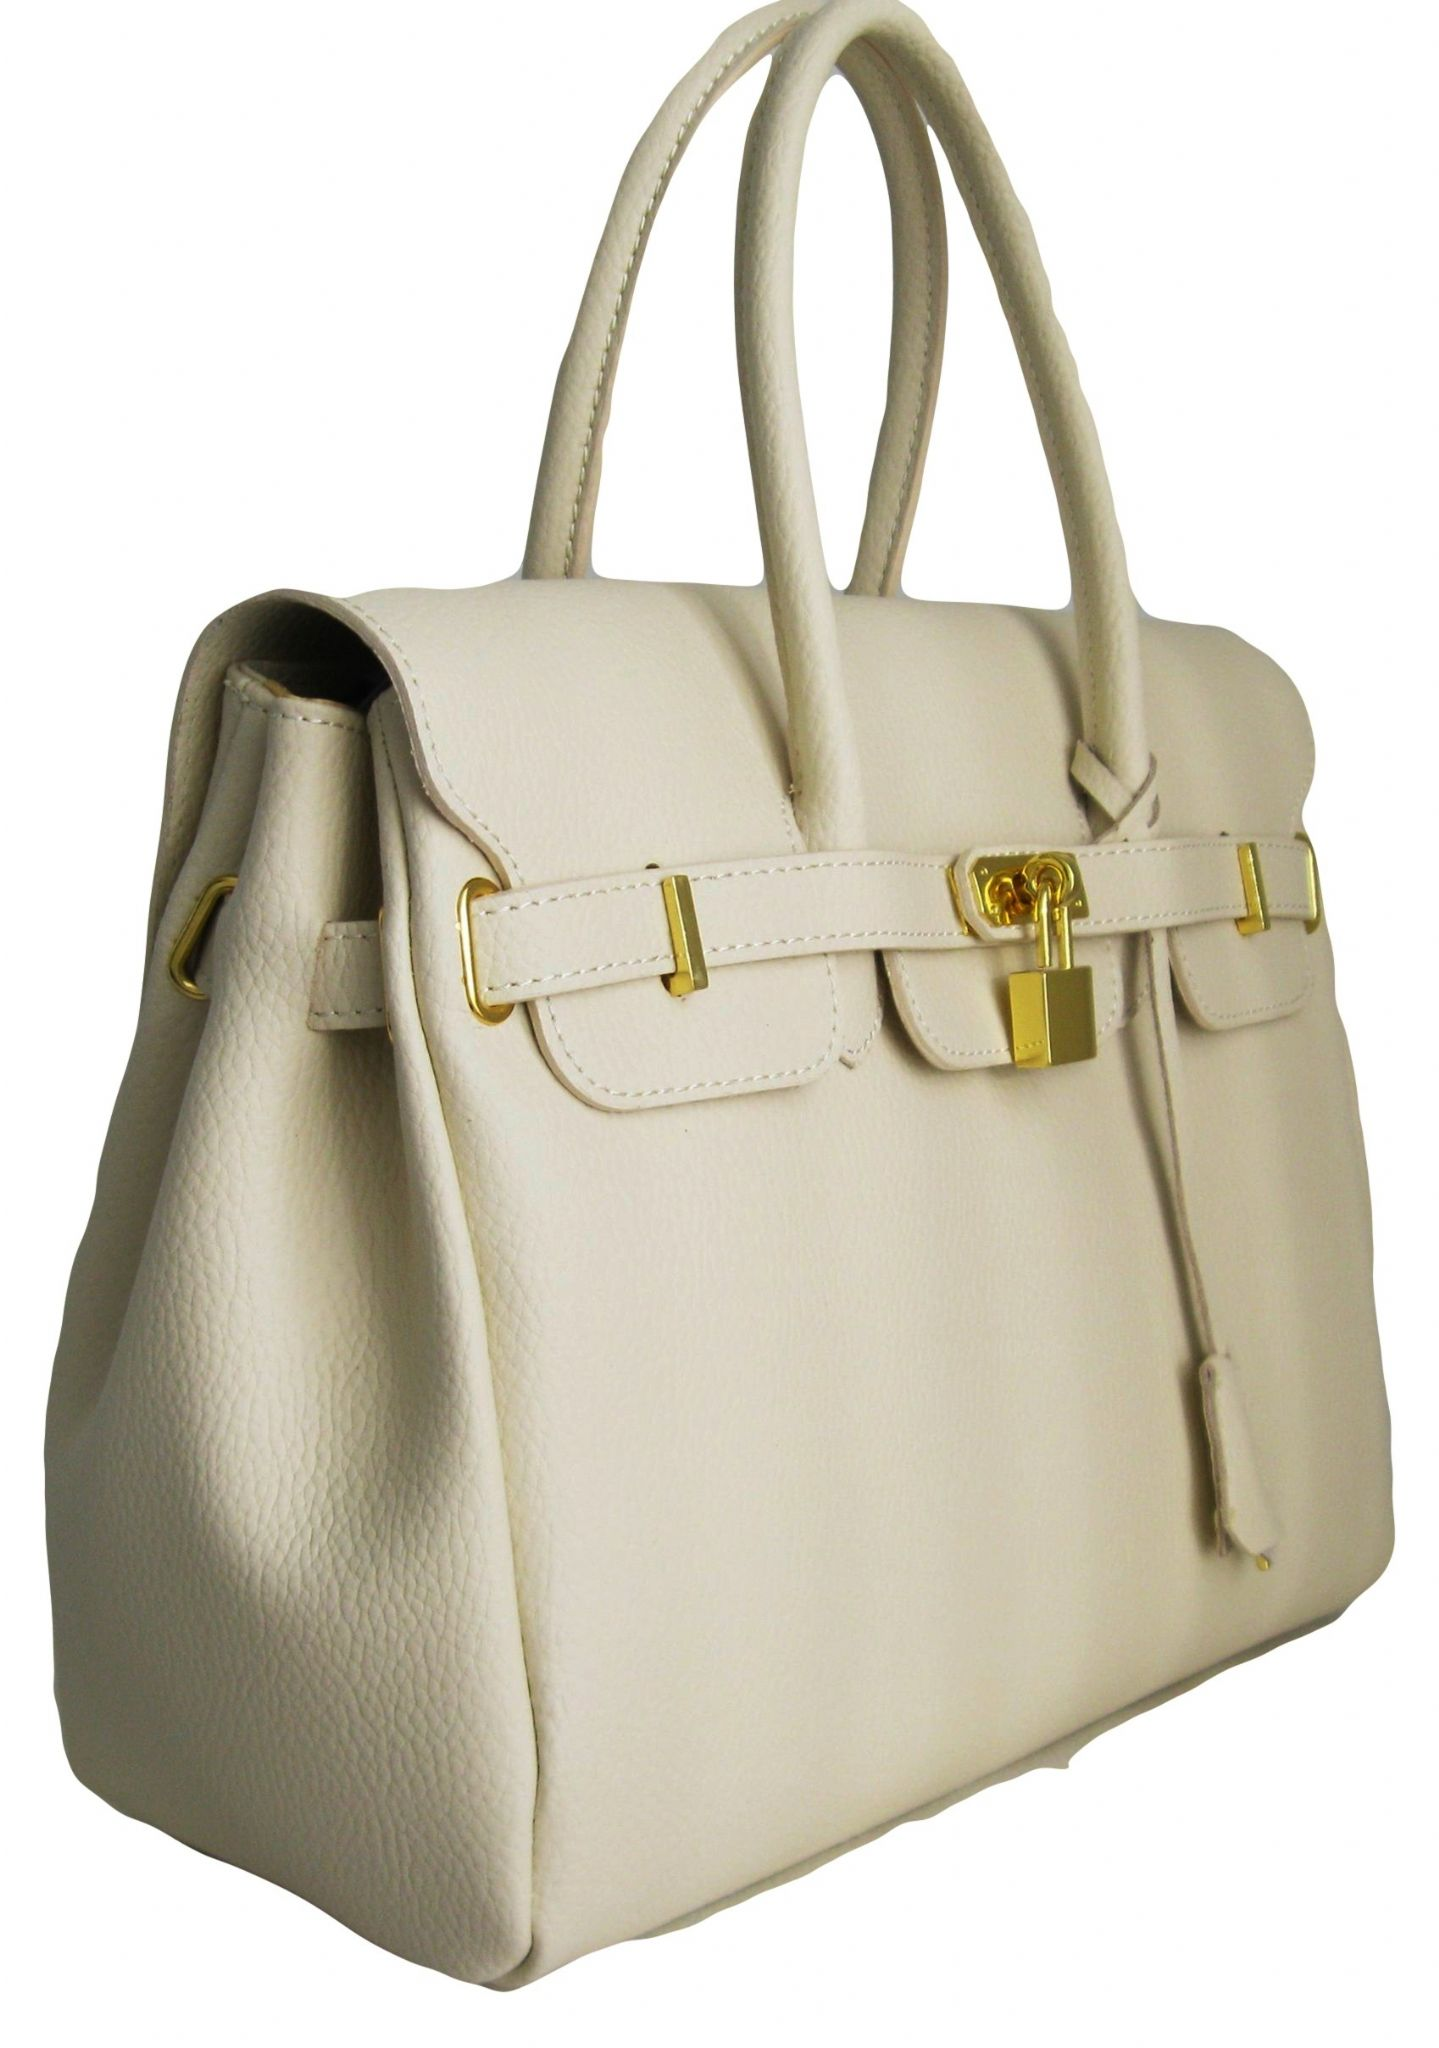 f91c4a051a BEAUTIFUL QUALITY DESIGNER INSPIRED ITALIAN COATED LEATHER HANDBAG WITH GOLD  COLOURED TRIMS STUNNING! EXCELLENT QUALITY ITEM.